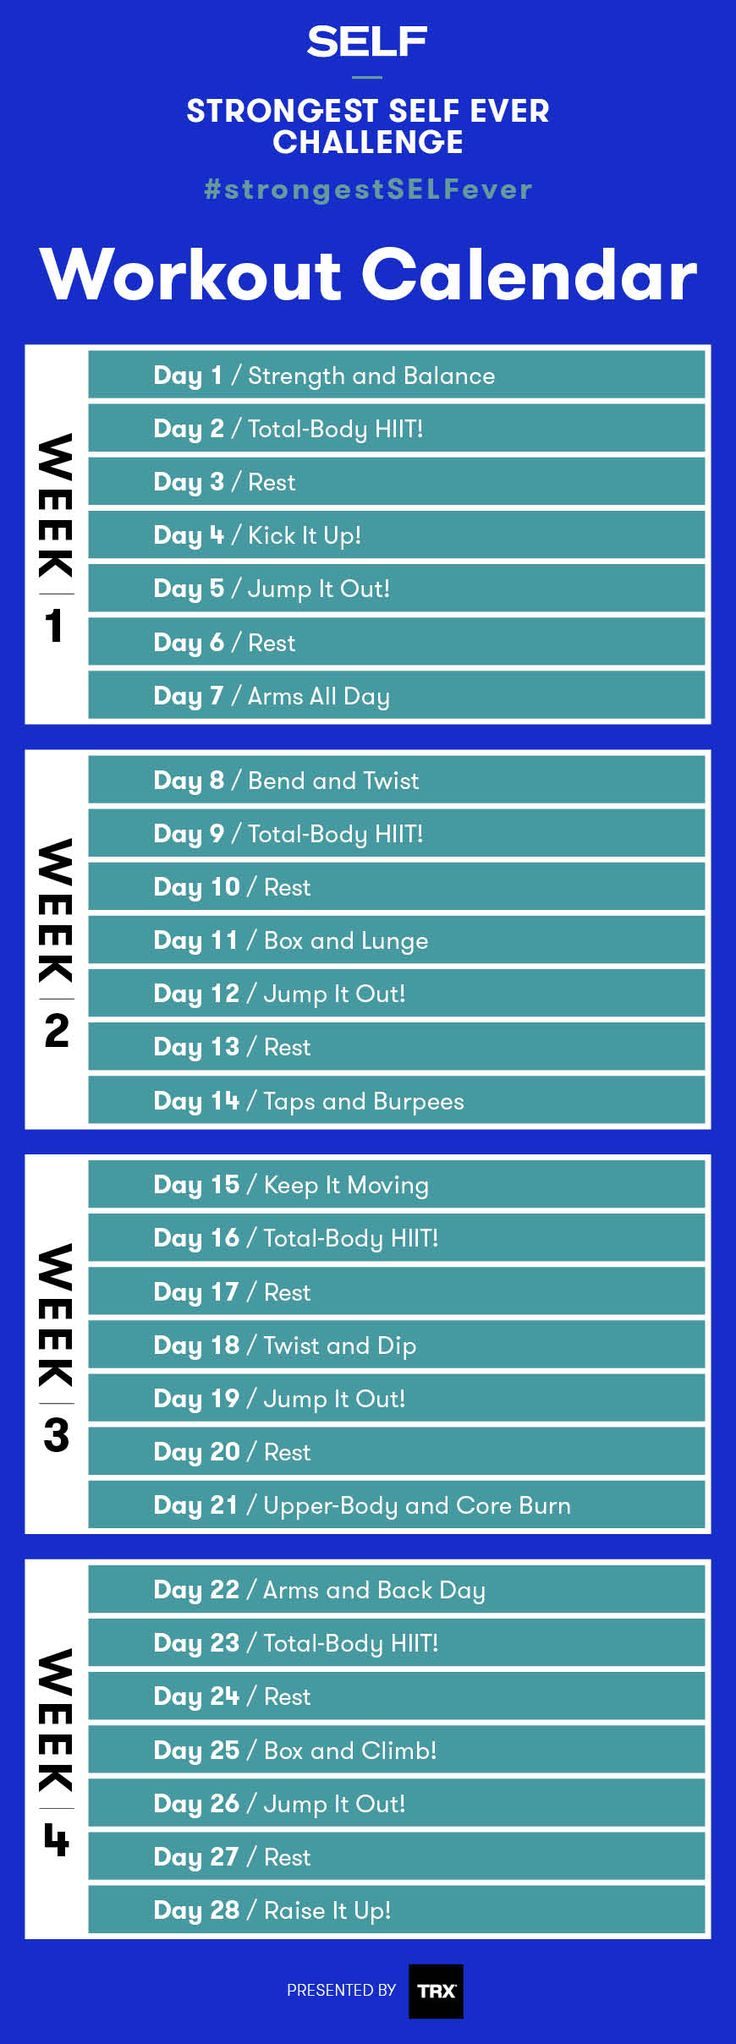 Your four-week workout calendar for the strongest SELF ever challenge is here! Each week, you'll have three strength workouts, two cardio workouts, and two rest days. You've also got some stretches as an option for an active rest day, plus two additional running workouts you can throw into the mix any time you're not feeling the scheduled cardio workout.